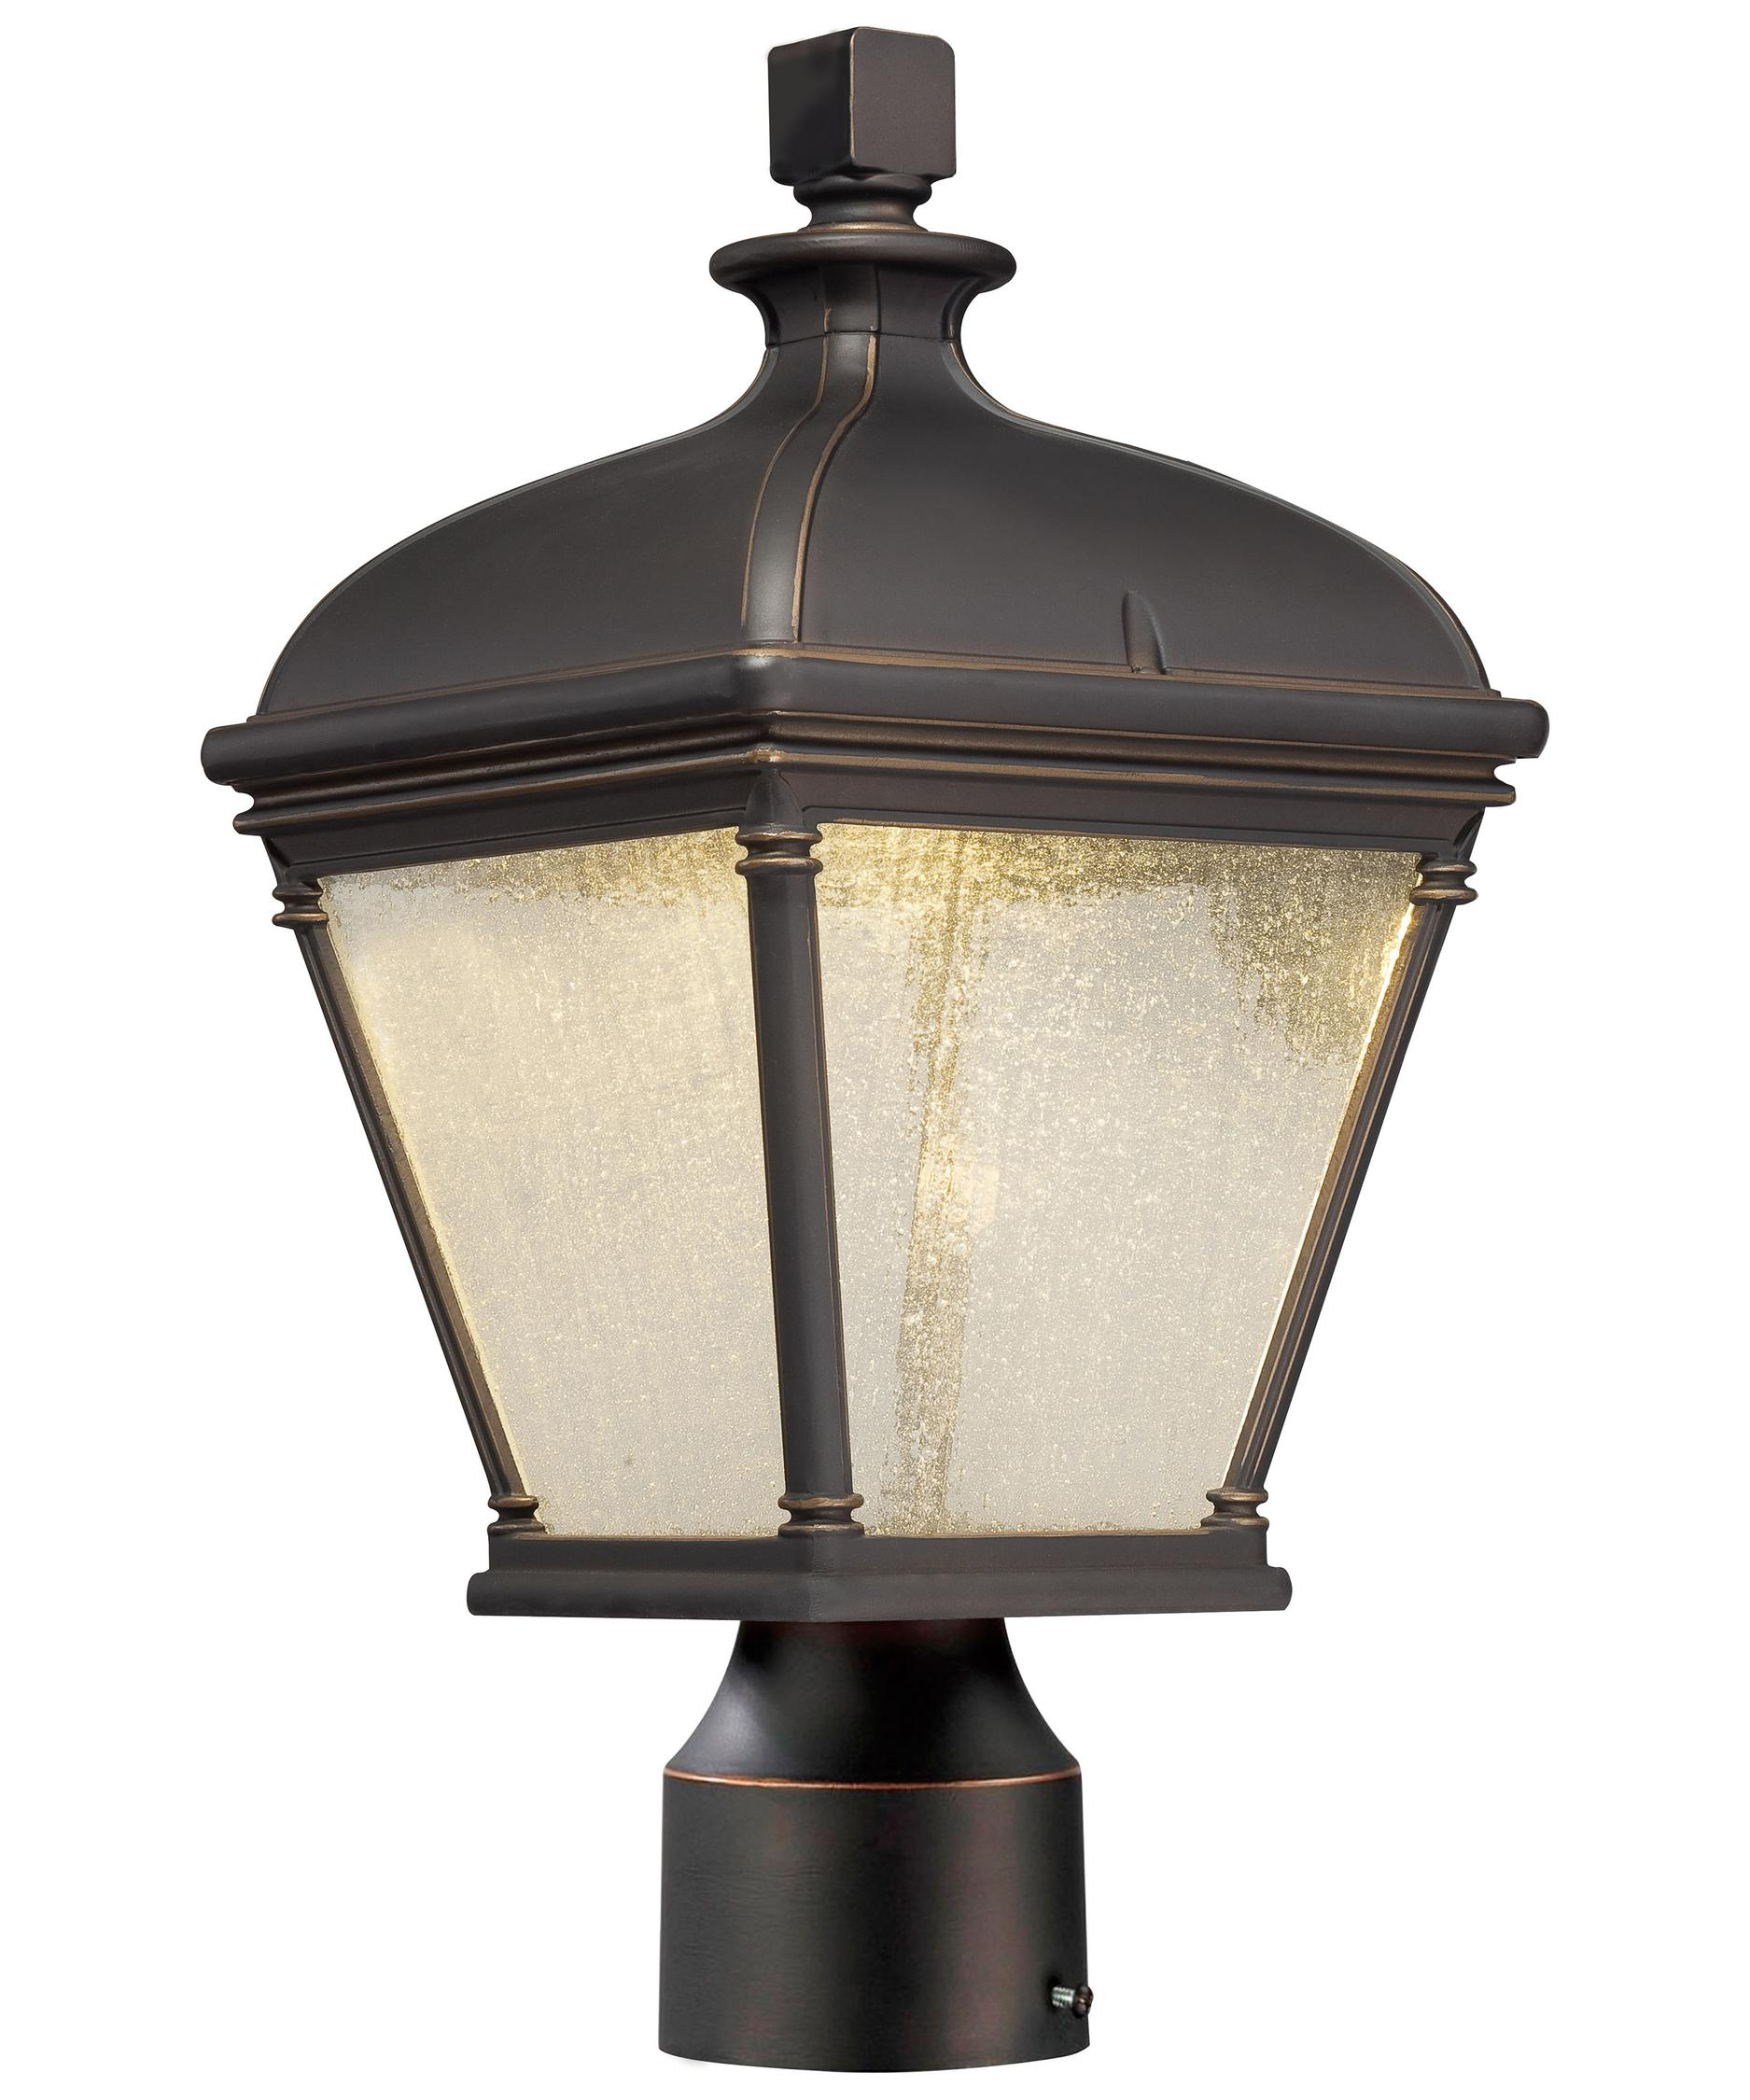 Shown in Ol Rubbed Bronze finish and Clear Seeded glassMinka Lavery 72396 Lauriston Manor 9 Inch Wide 1 Light Outdoor  . Outdoor Post Mount Lighting Fixtures. Home Design Ideas